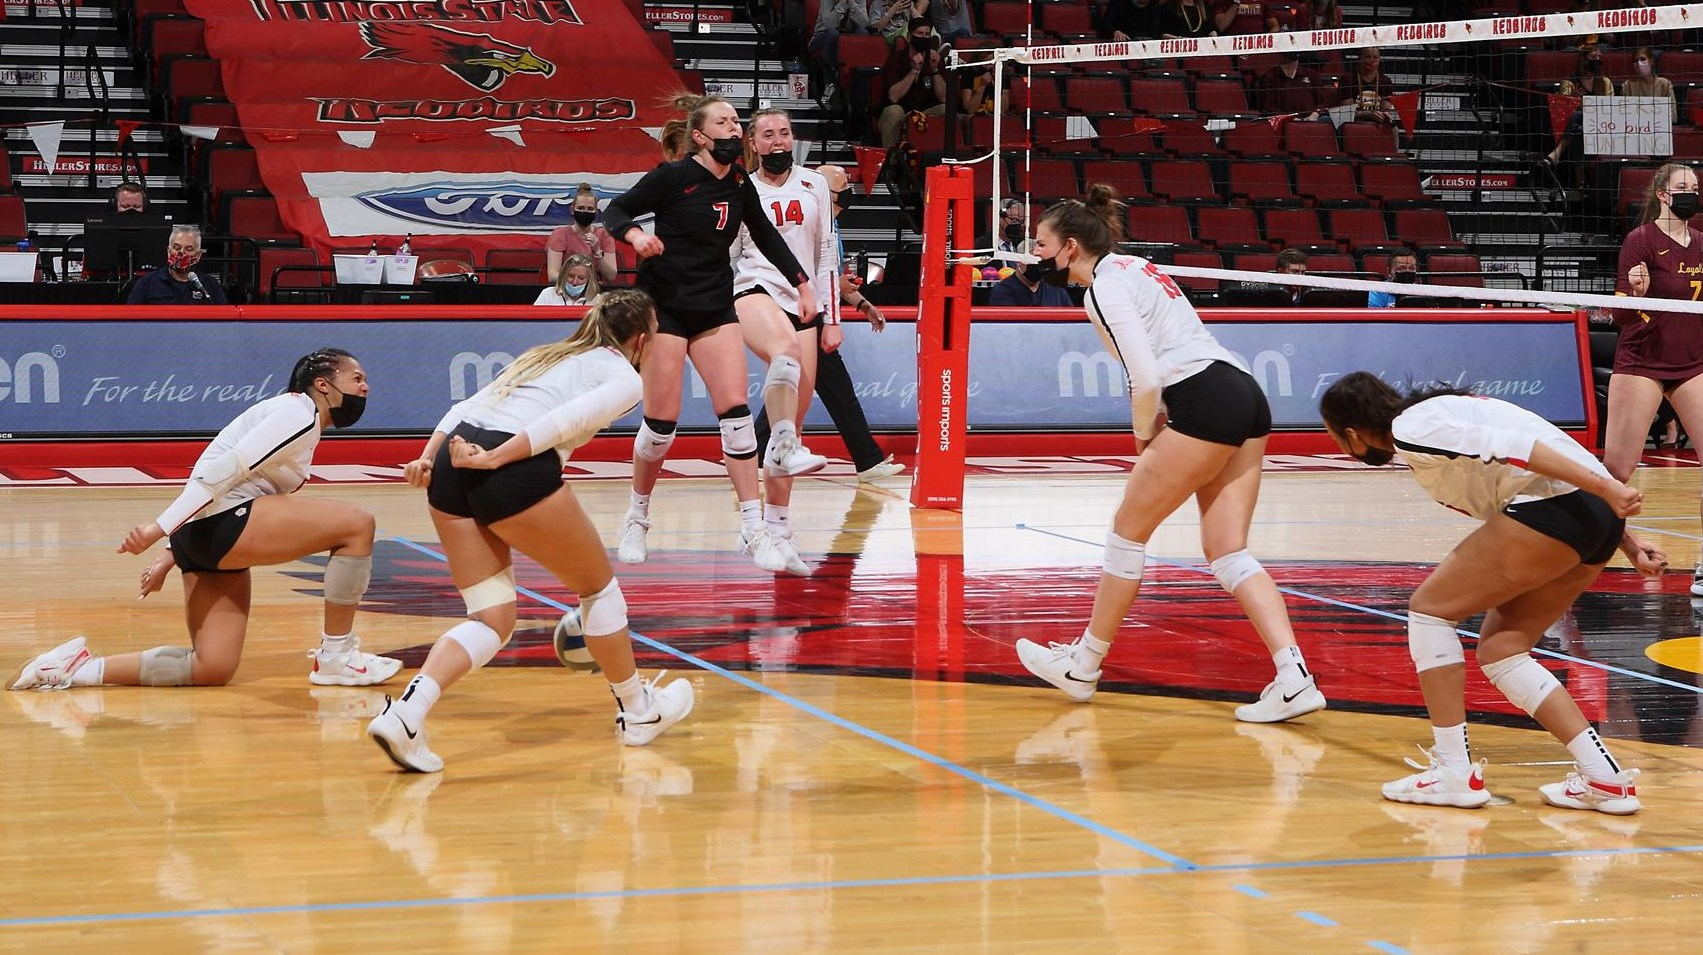 Wiebel, Day Collect MVC Weekly Honors - Illinois State